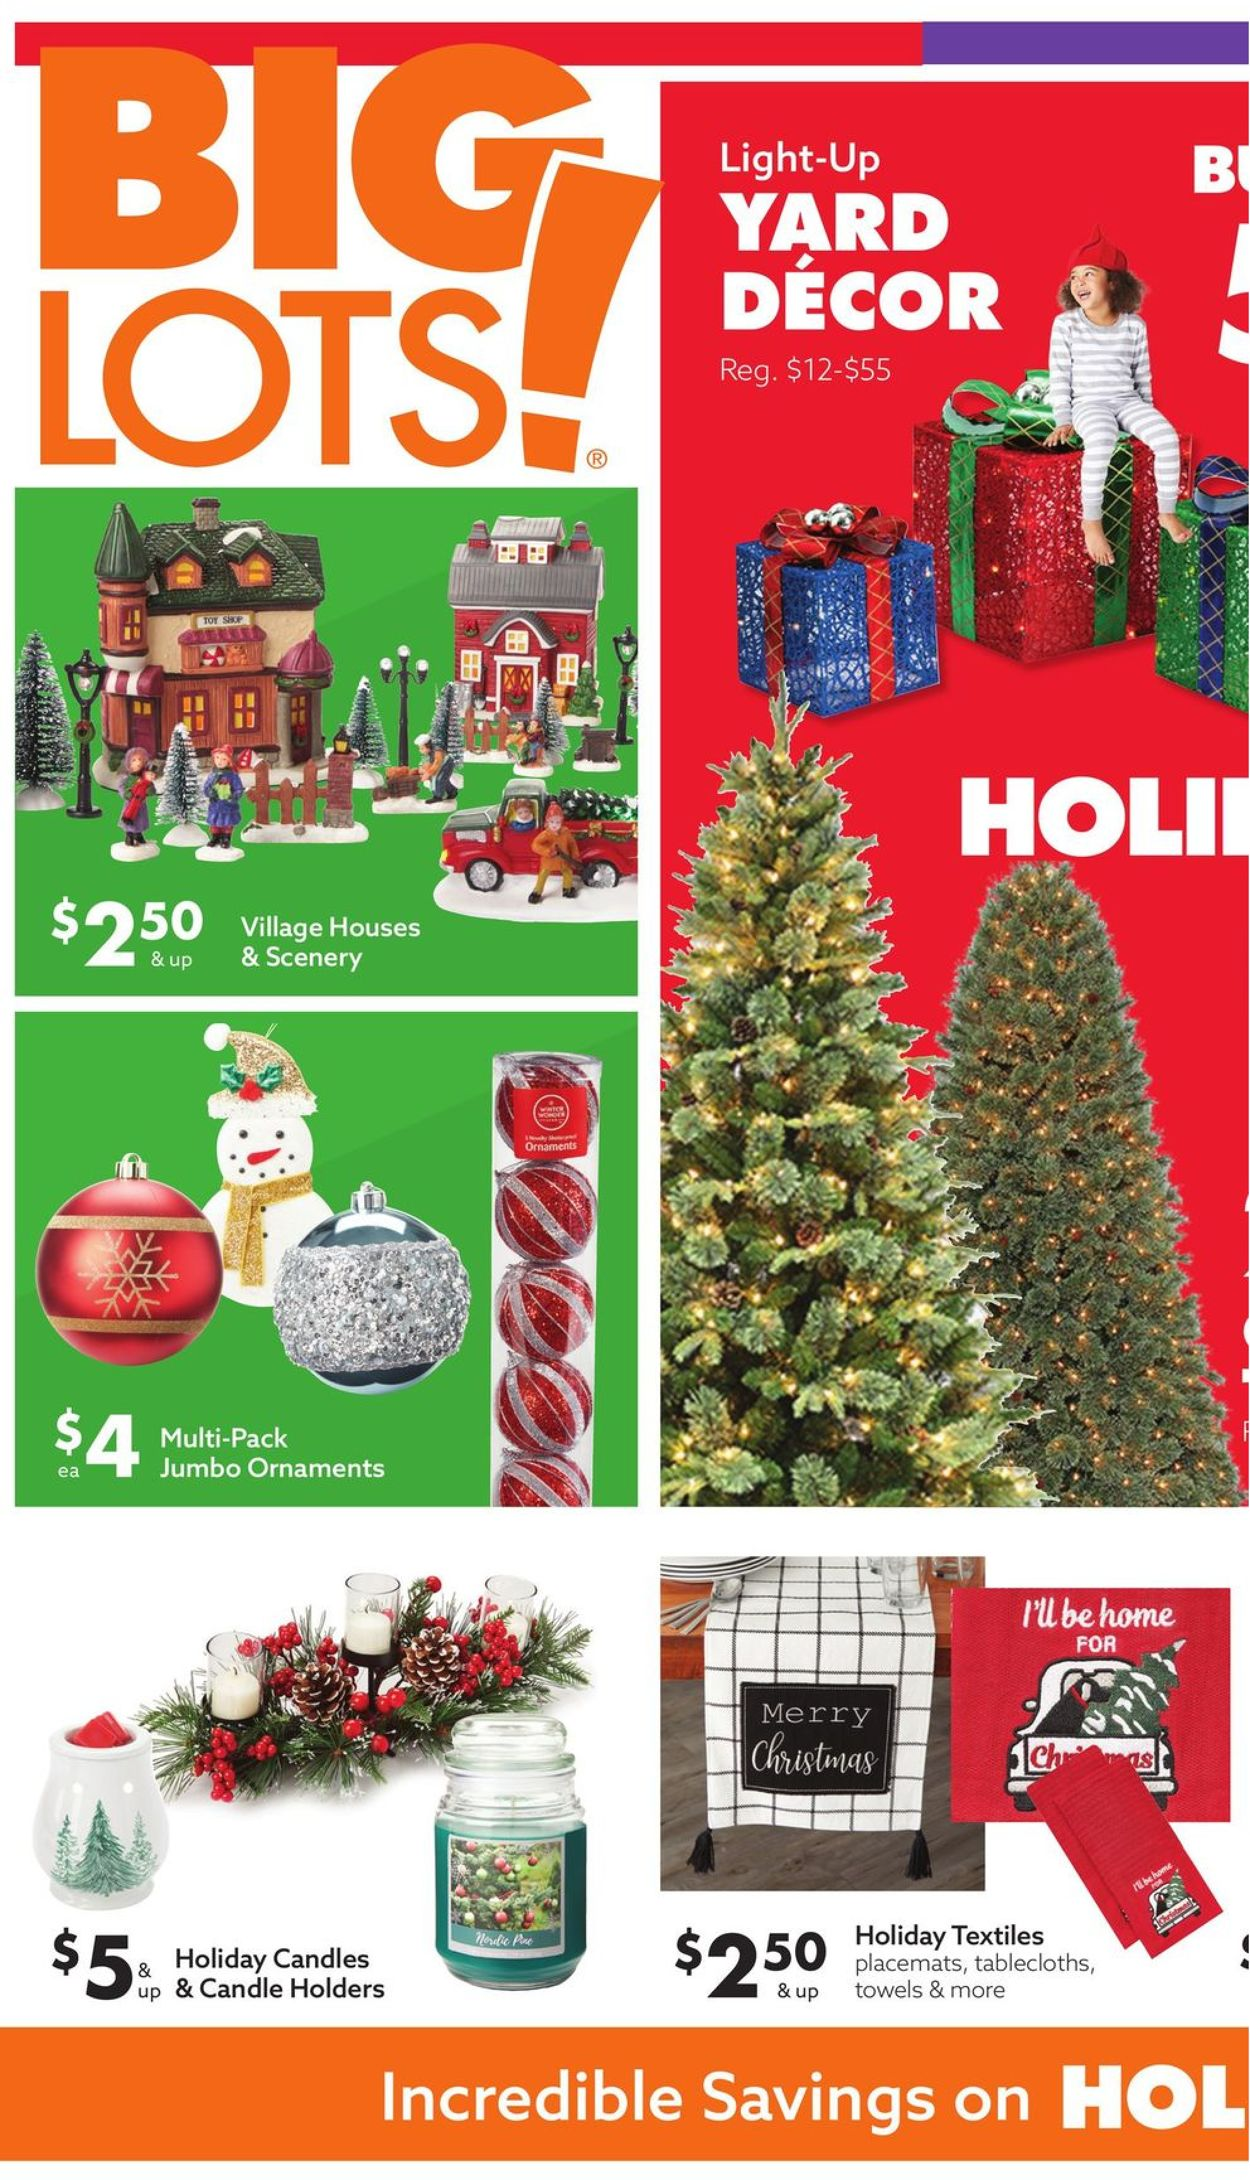 Big Lots Closing Times Christmas Eve 2020 Big Lots Holiday 2020 Current weekly ad 10/31   11/07/2020 [3